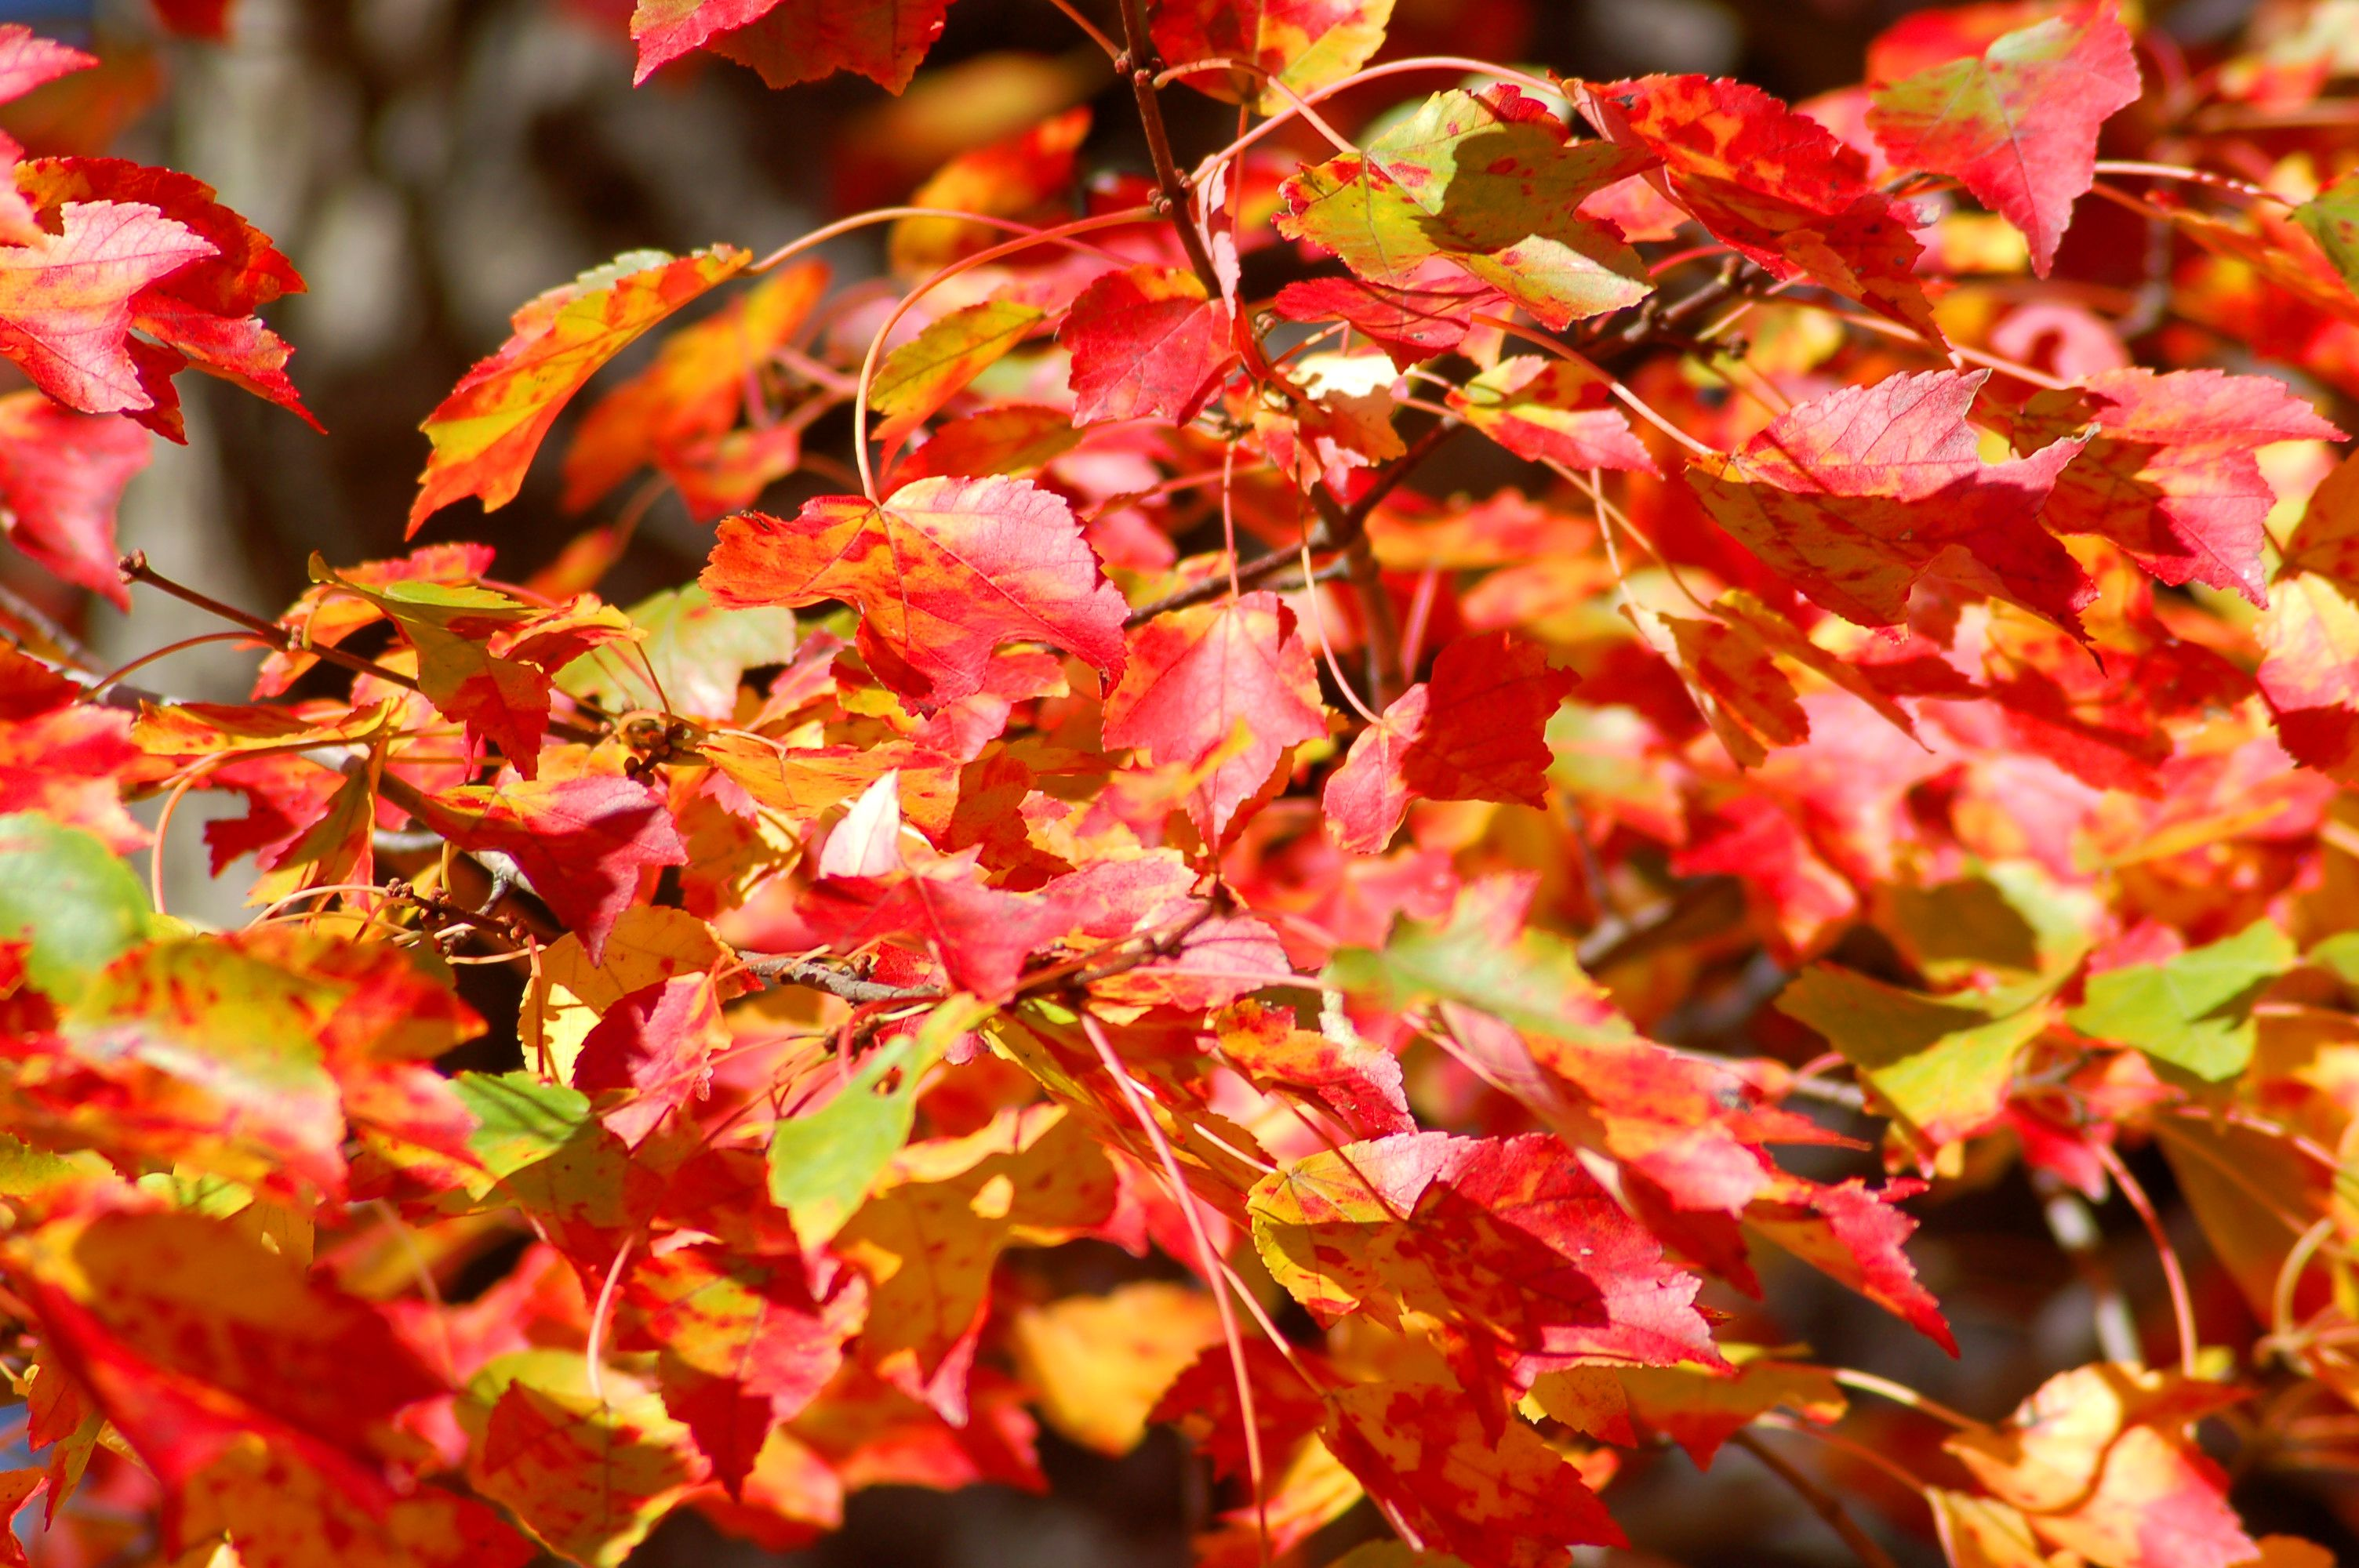 Red maples have fall leaves with three colors at once (red, yellow and green).